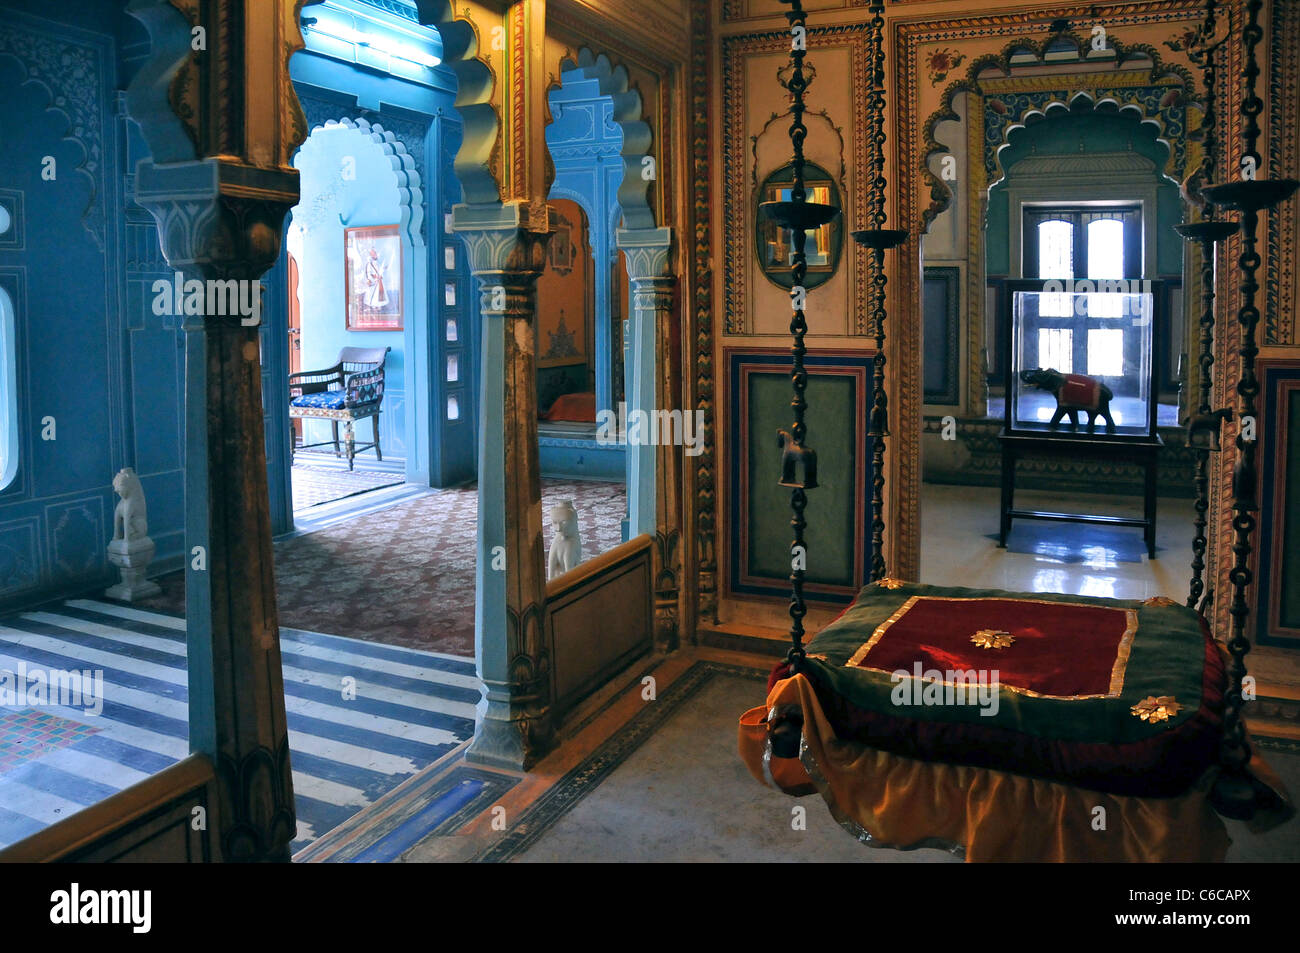 Interior Room Inside City Palace Udaipur Rajasthan India